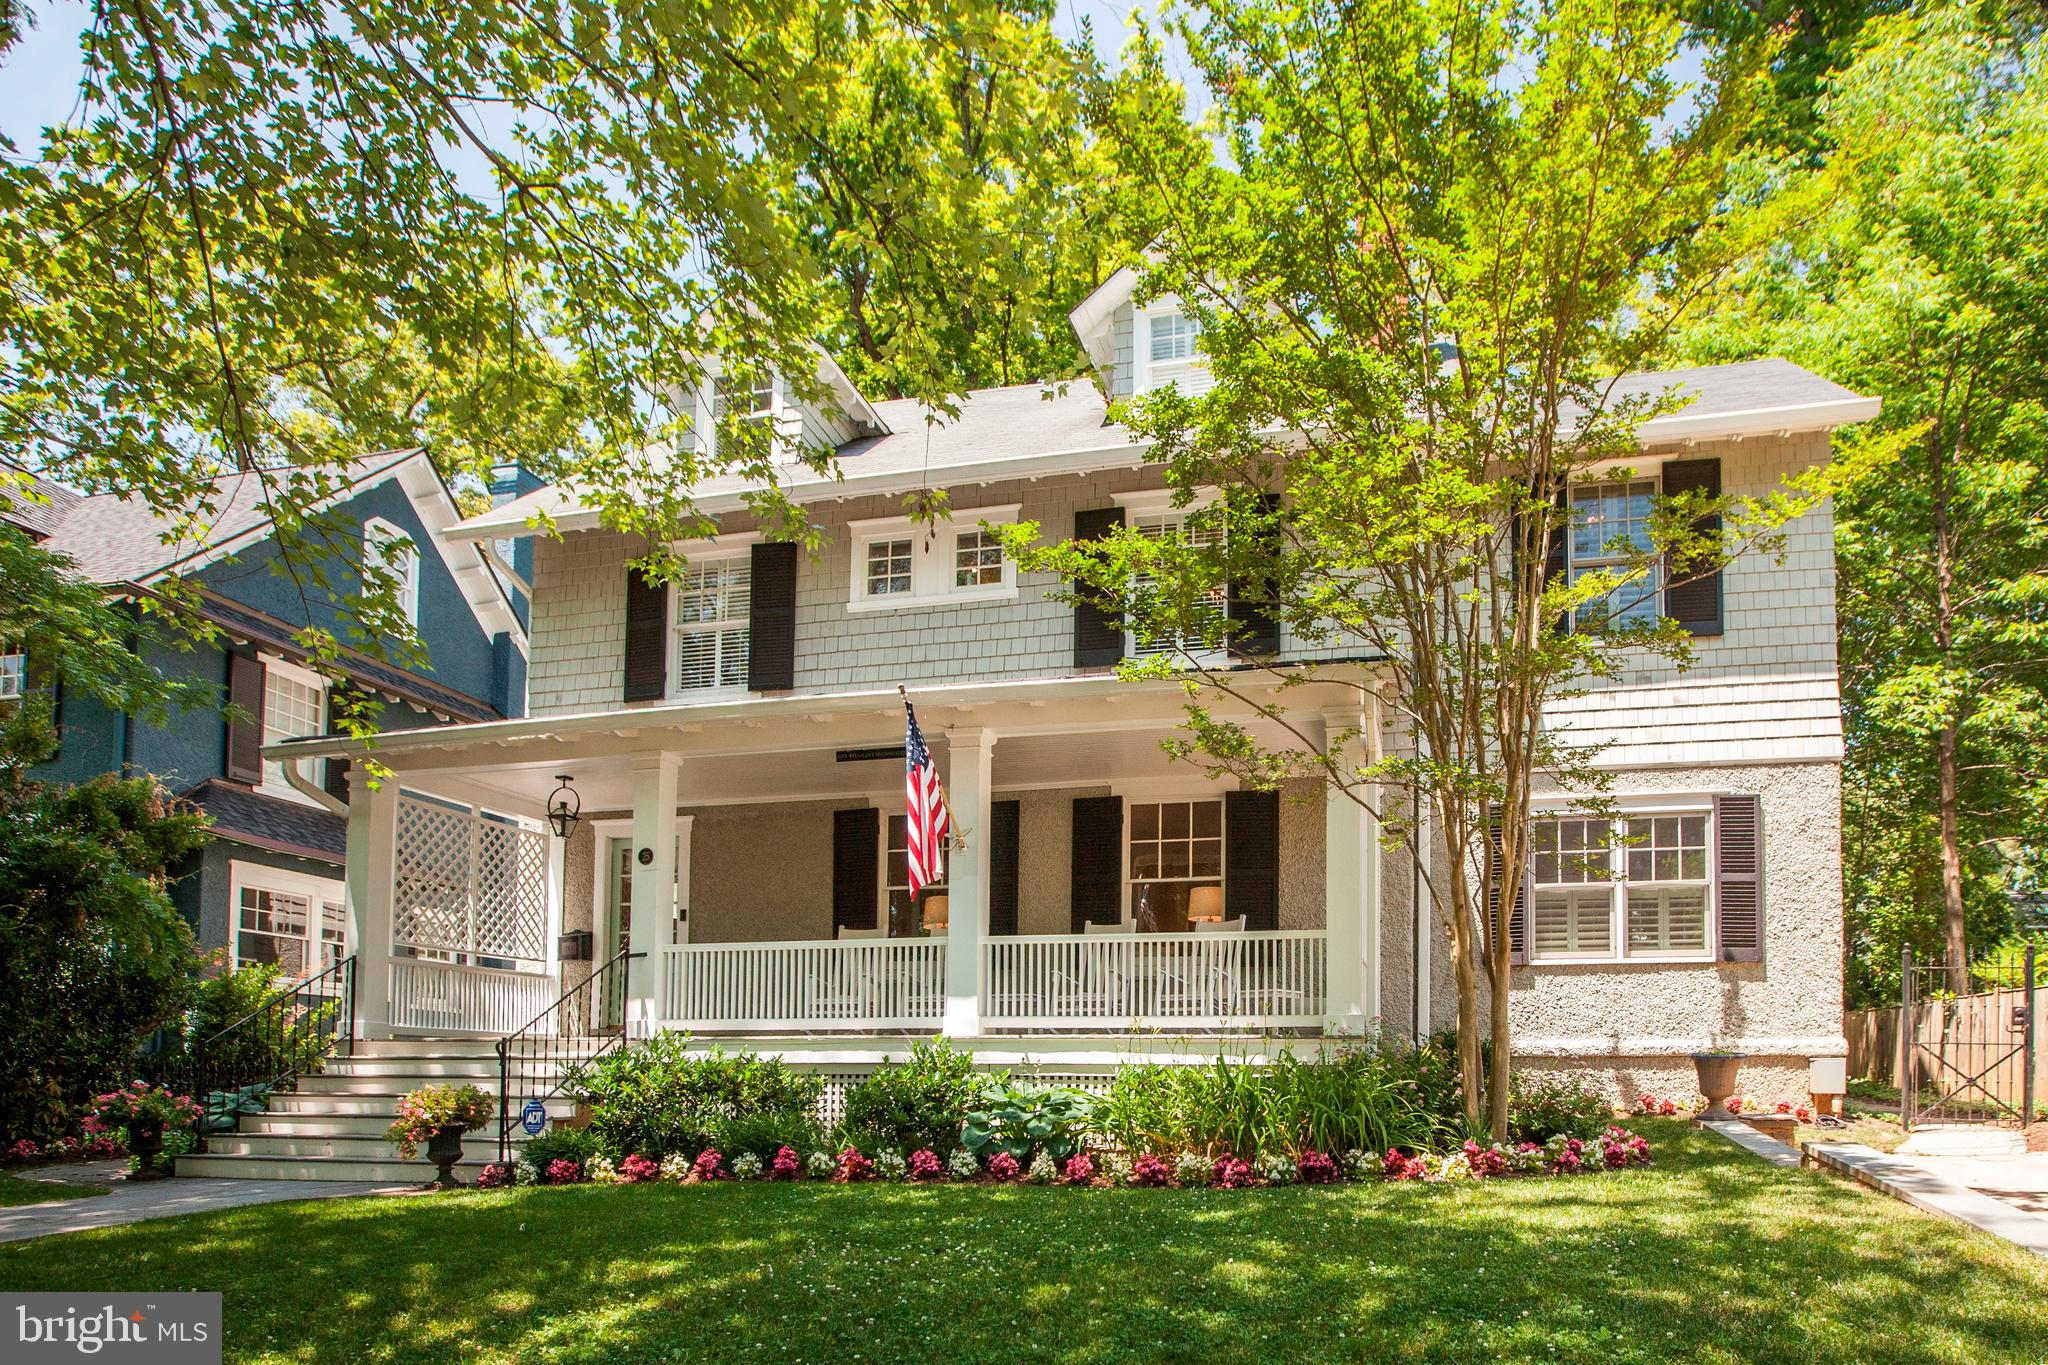 25 W IRVING STREET, CHEVY CHASE, MD 20815